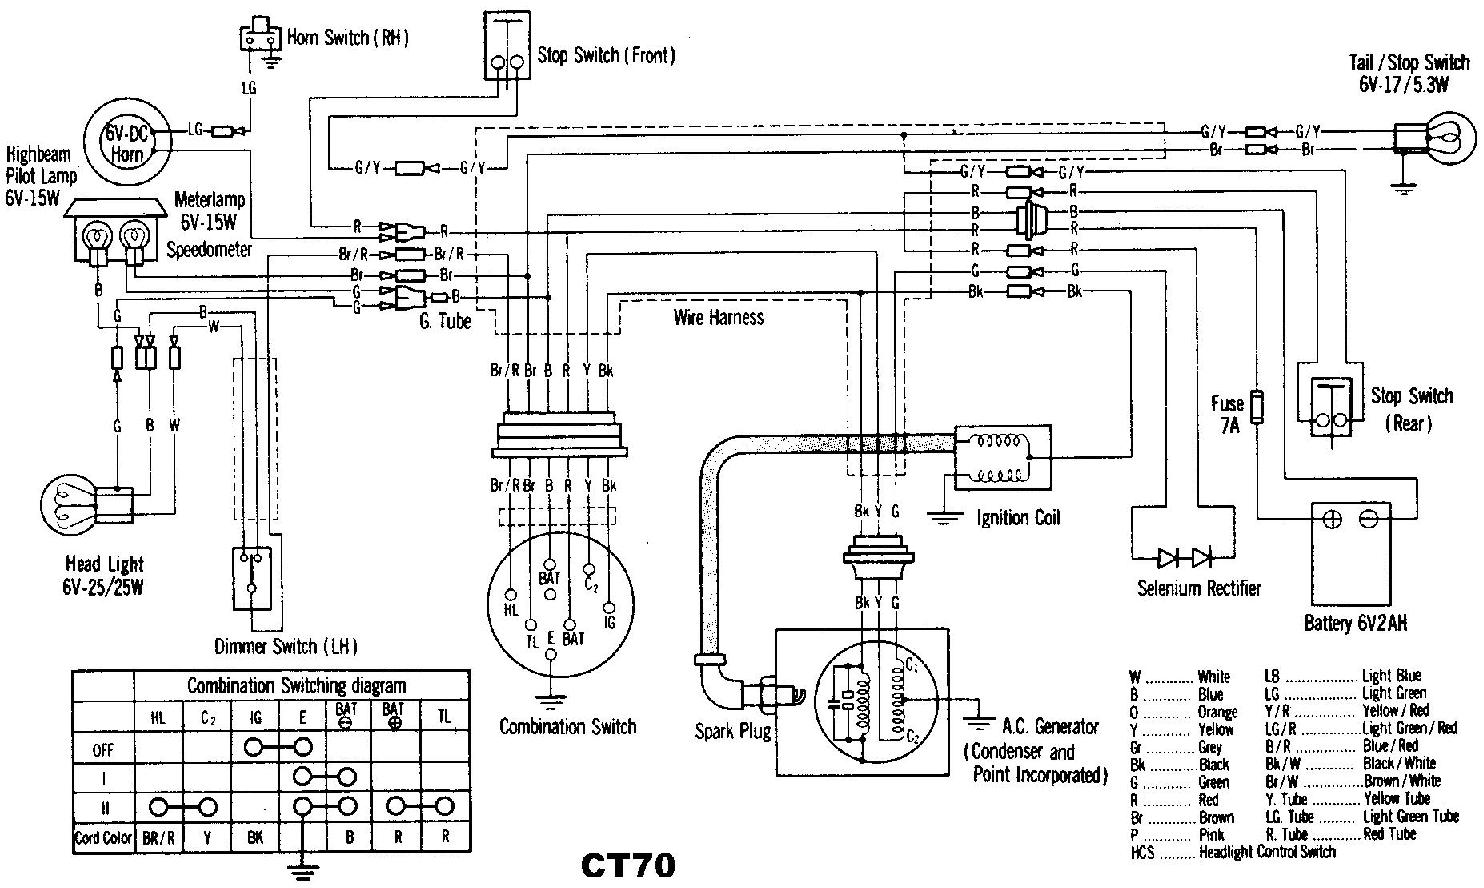 dratv_2269_123803613 tmx wiring diagram honda wiring diagrams instruction honda c70 wiring diagram at alyssarenee.co